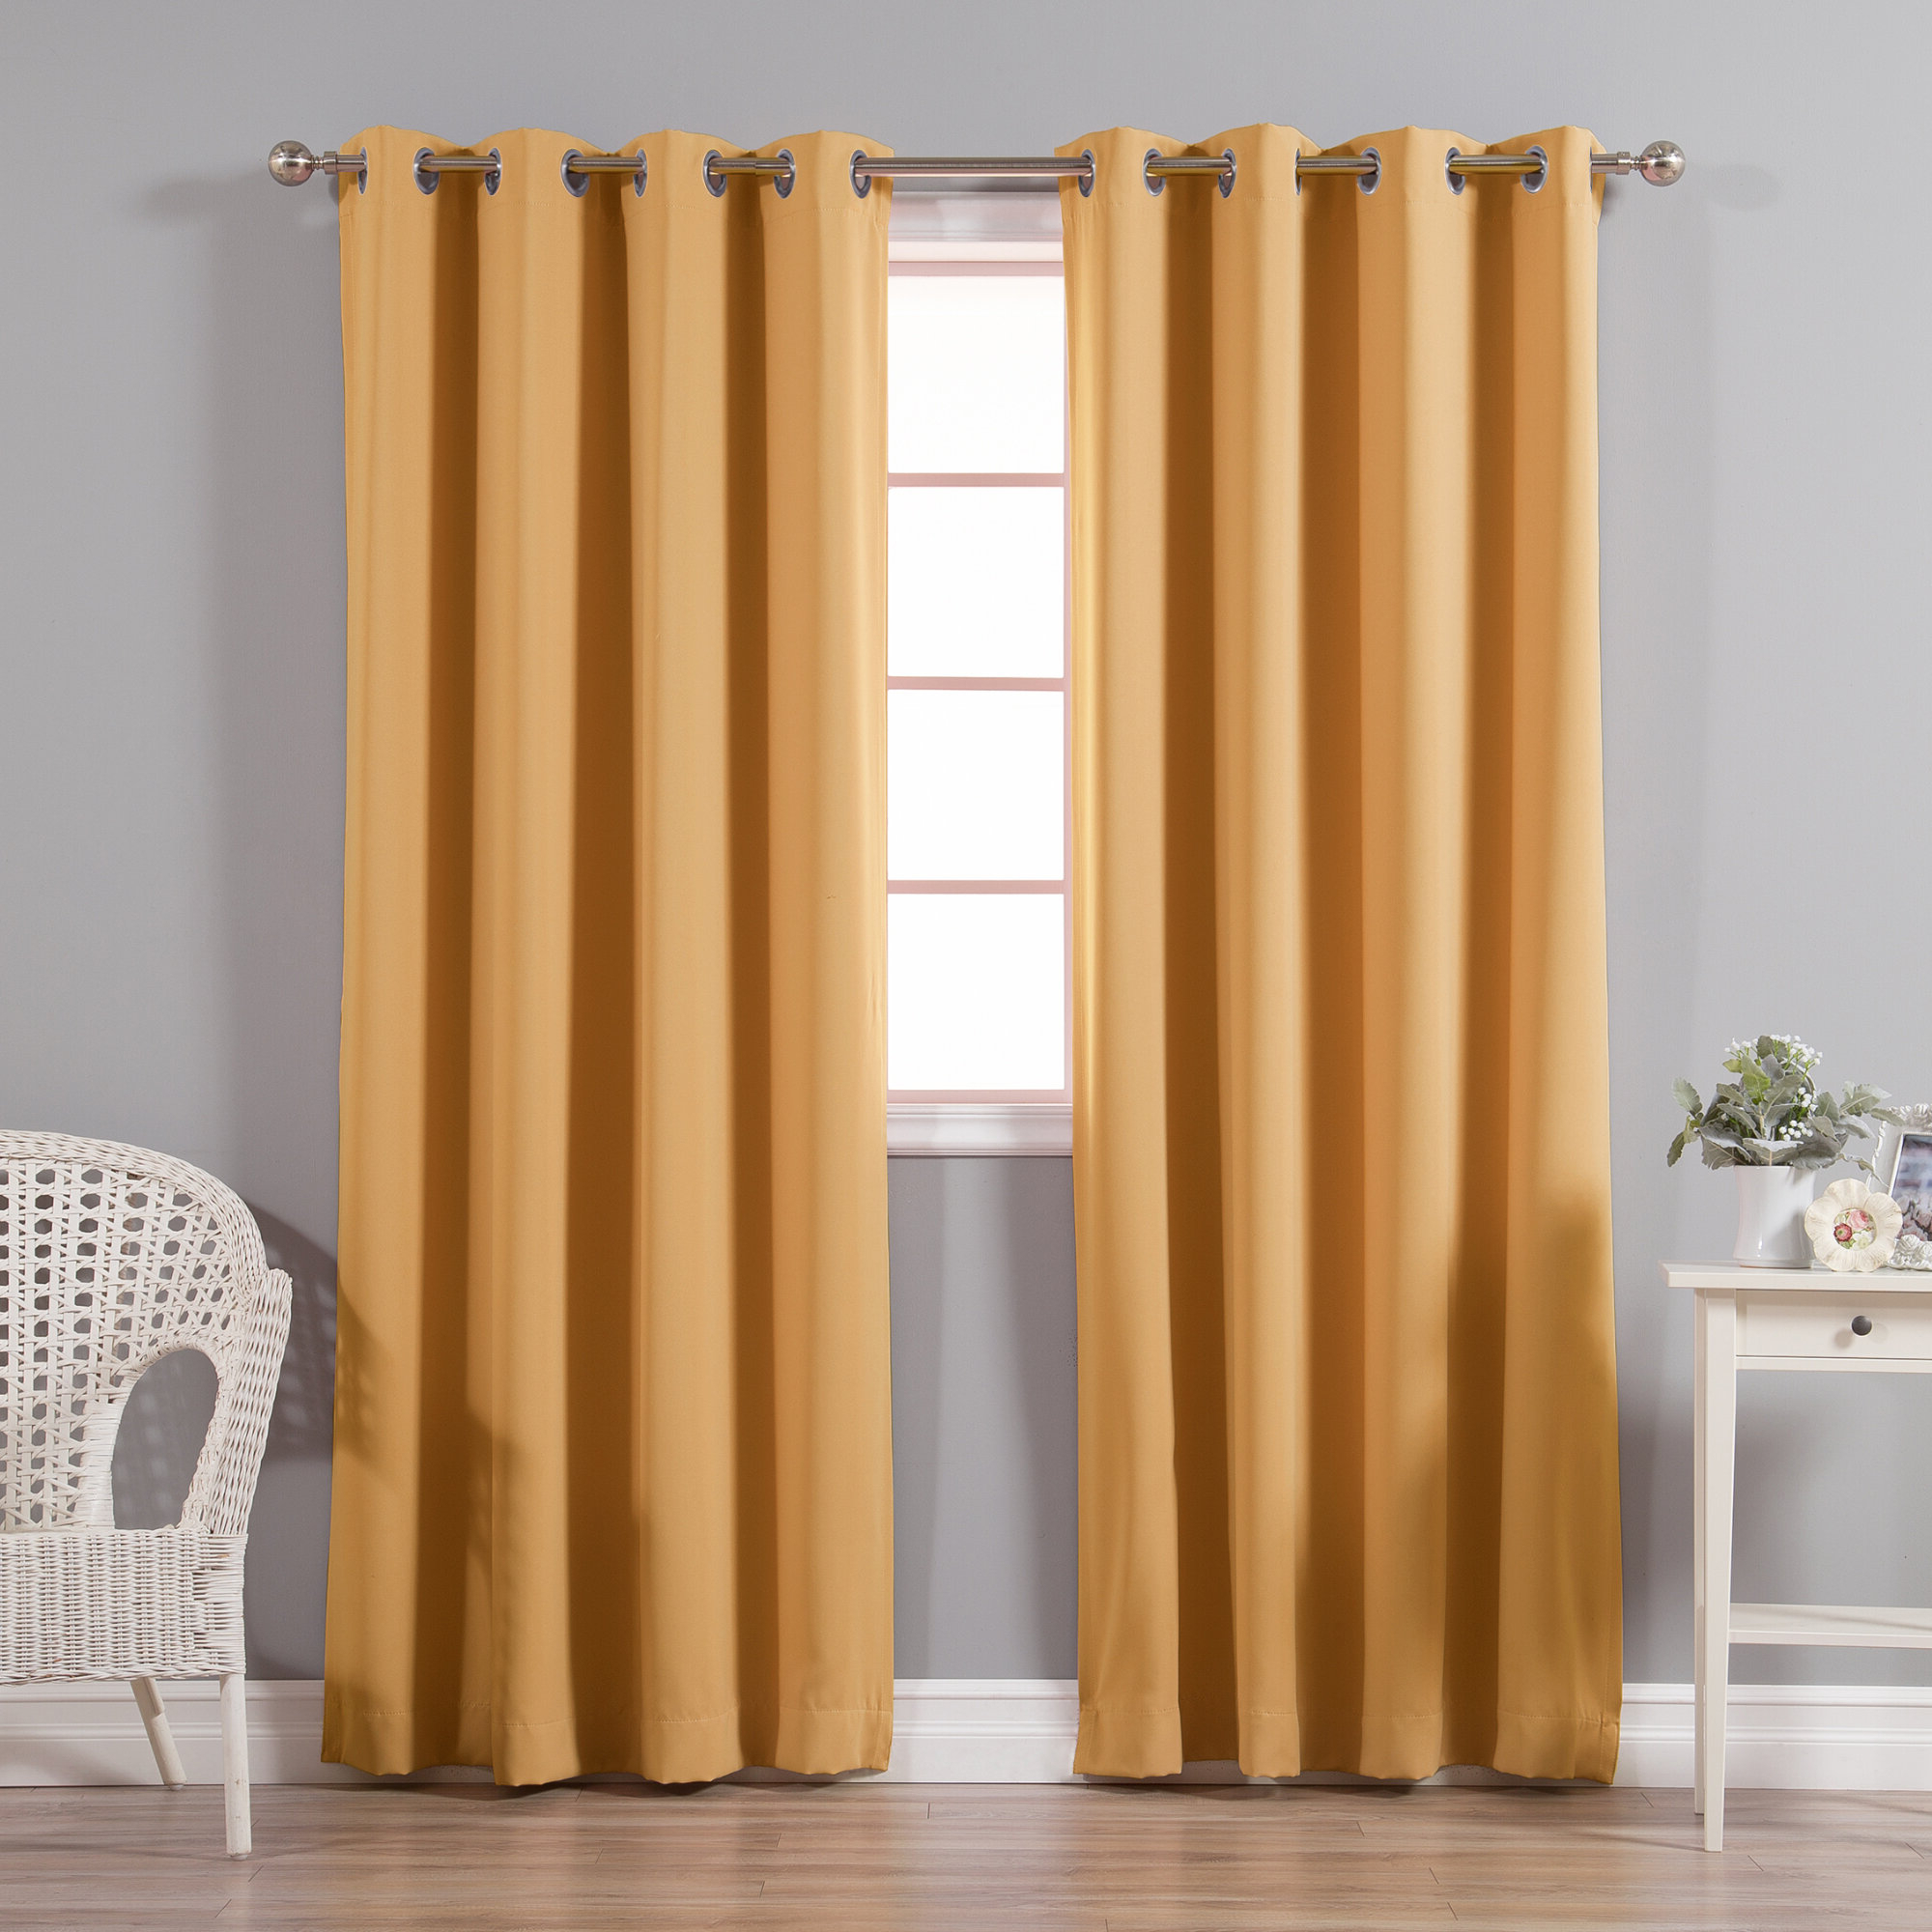 Inez Patio Door Window Curtain Panels With Regard To Latest Schaeffer Solid Blackout Thermal Grommet Curtain Panels (View 17 of 20)